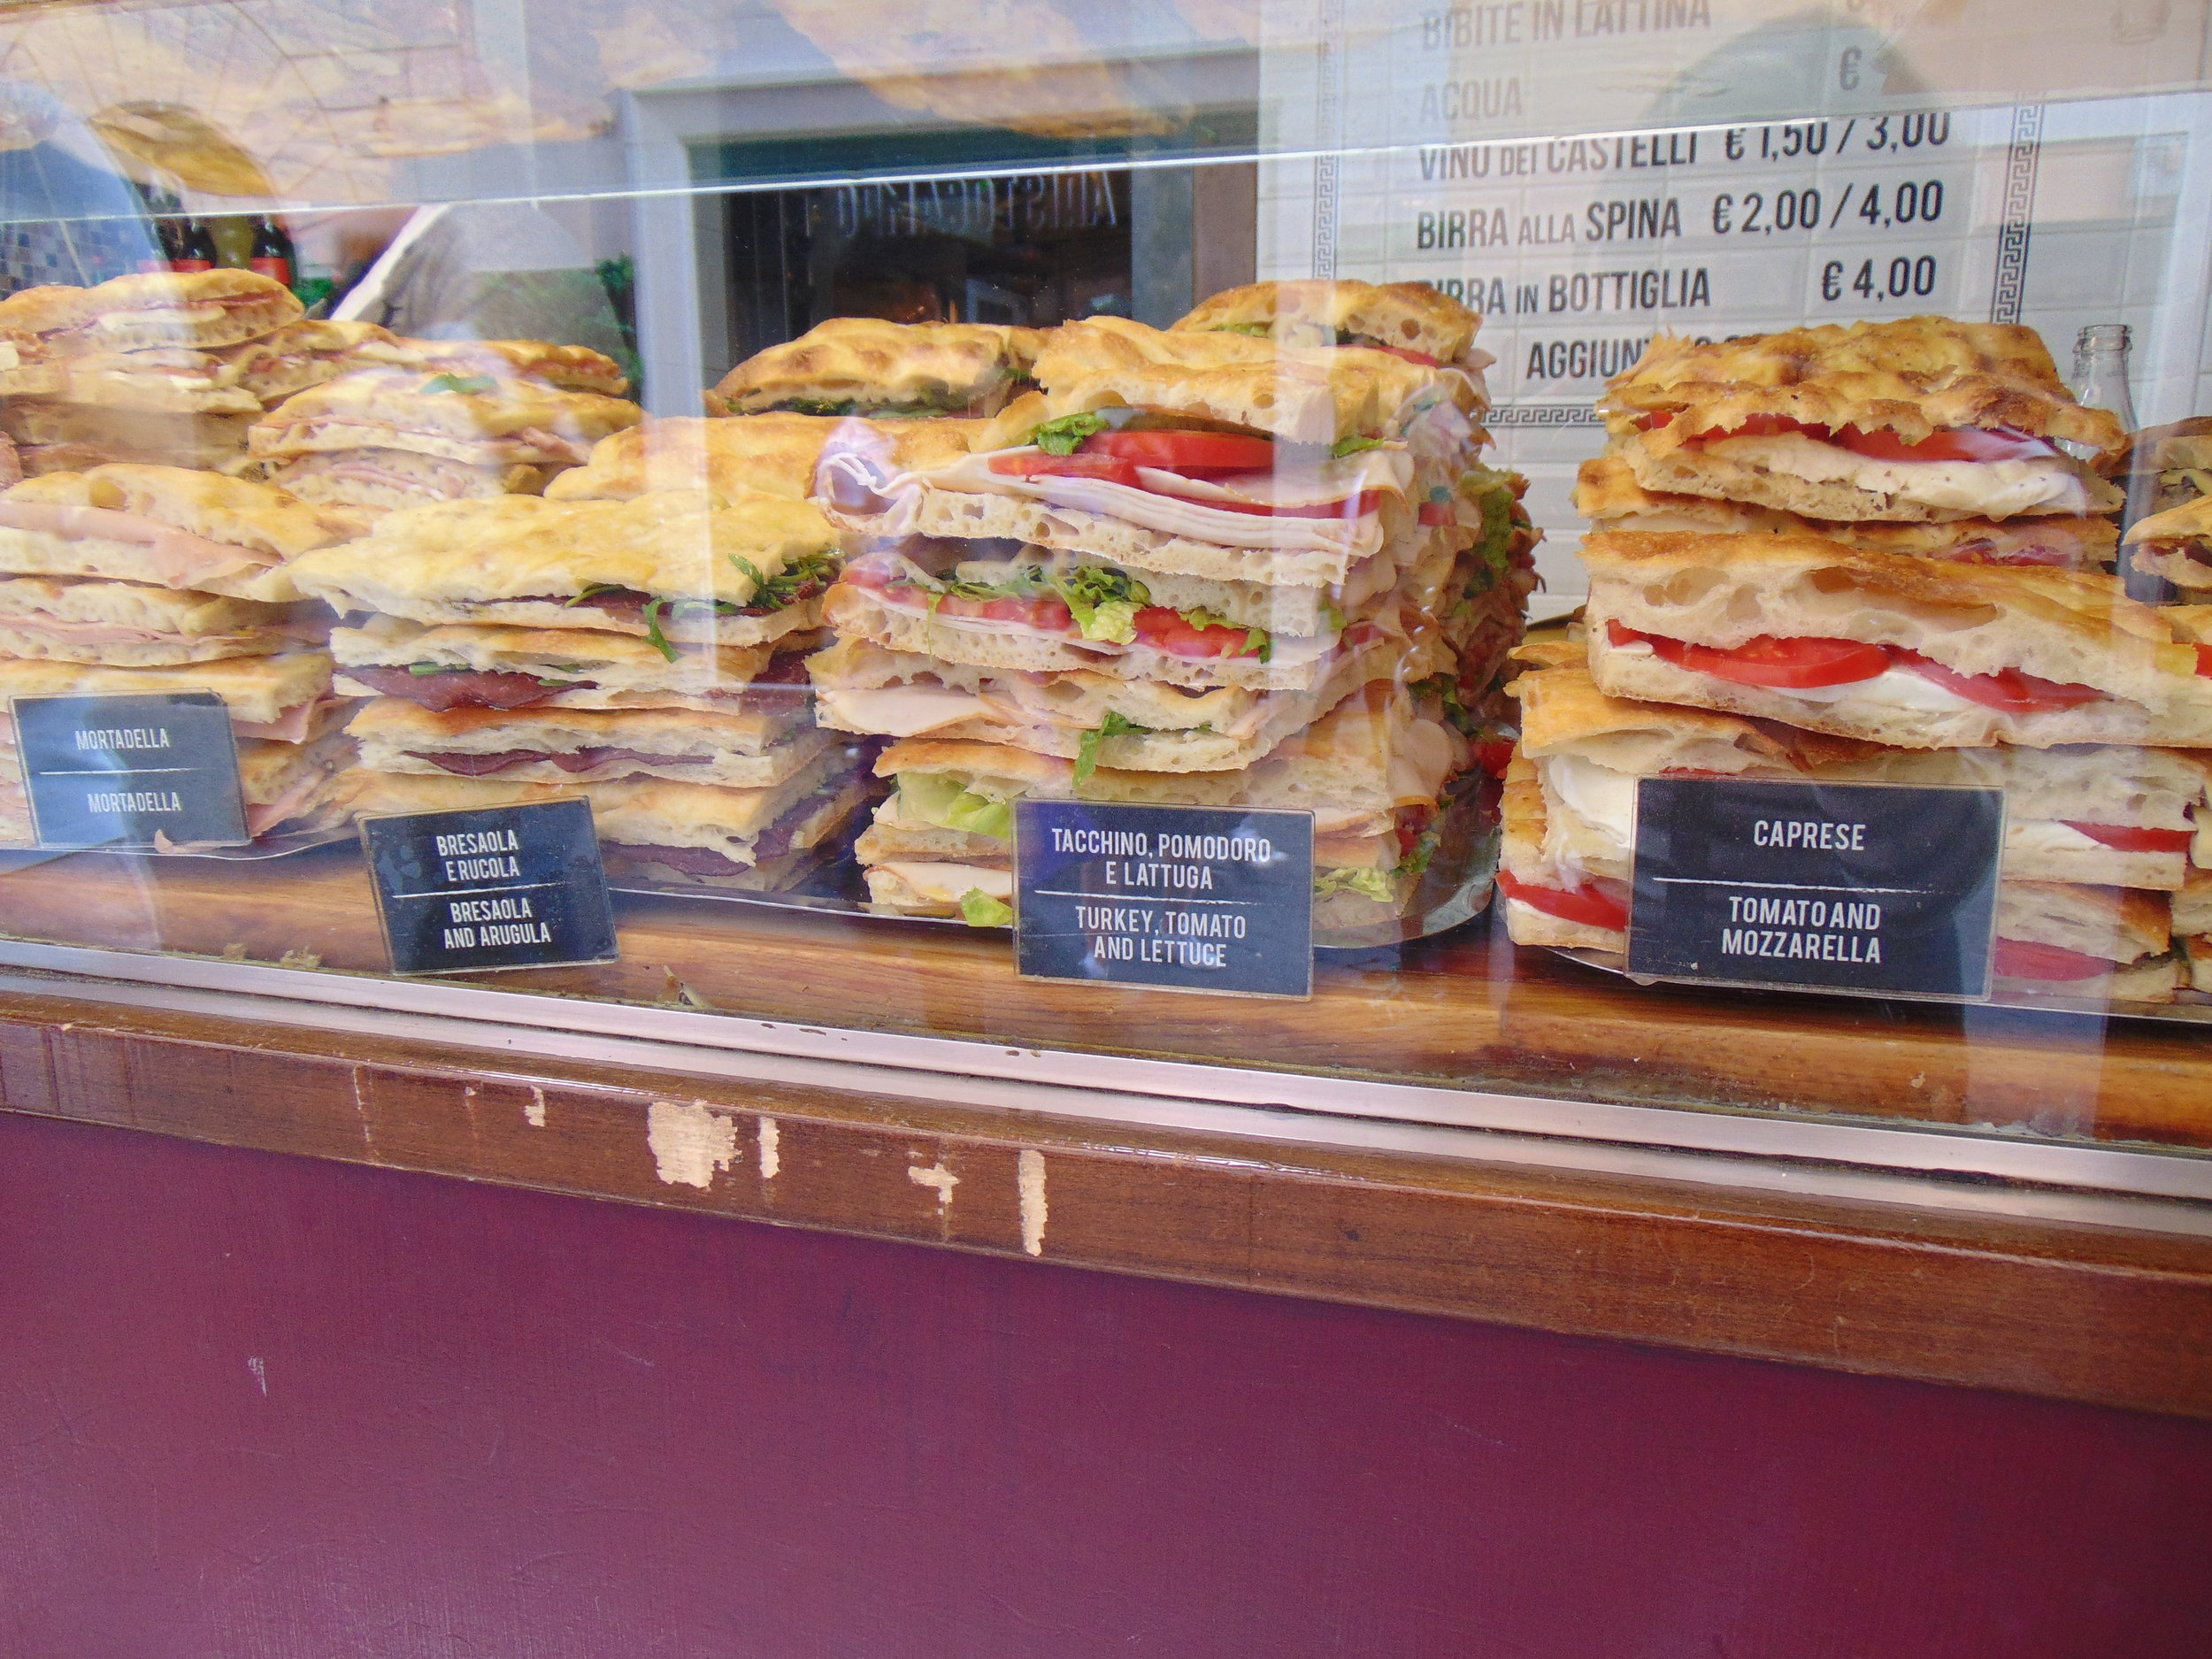 a daily stop to see 'The Panini Lady'